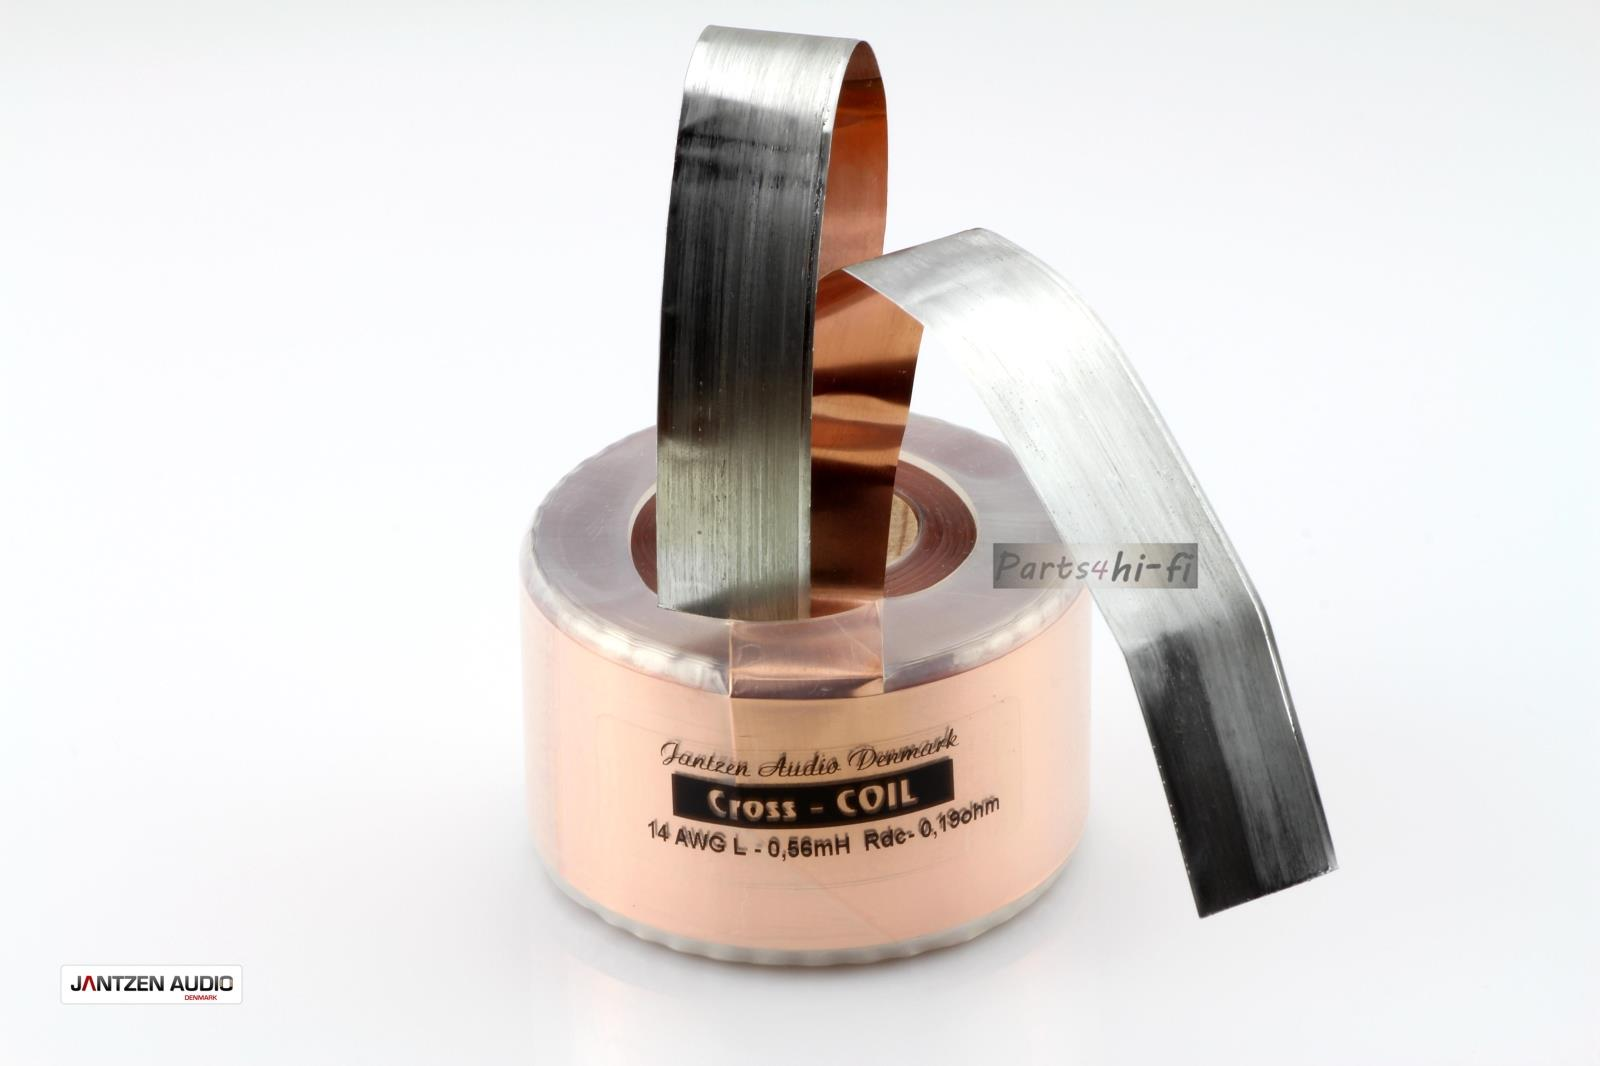 2pcs/lot Denmark Jantzen-audio Cross Coil Crossover/Copper Inductor 14AWG Series free shipping